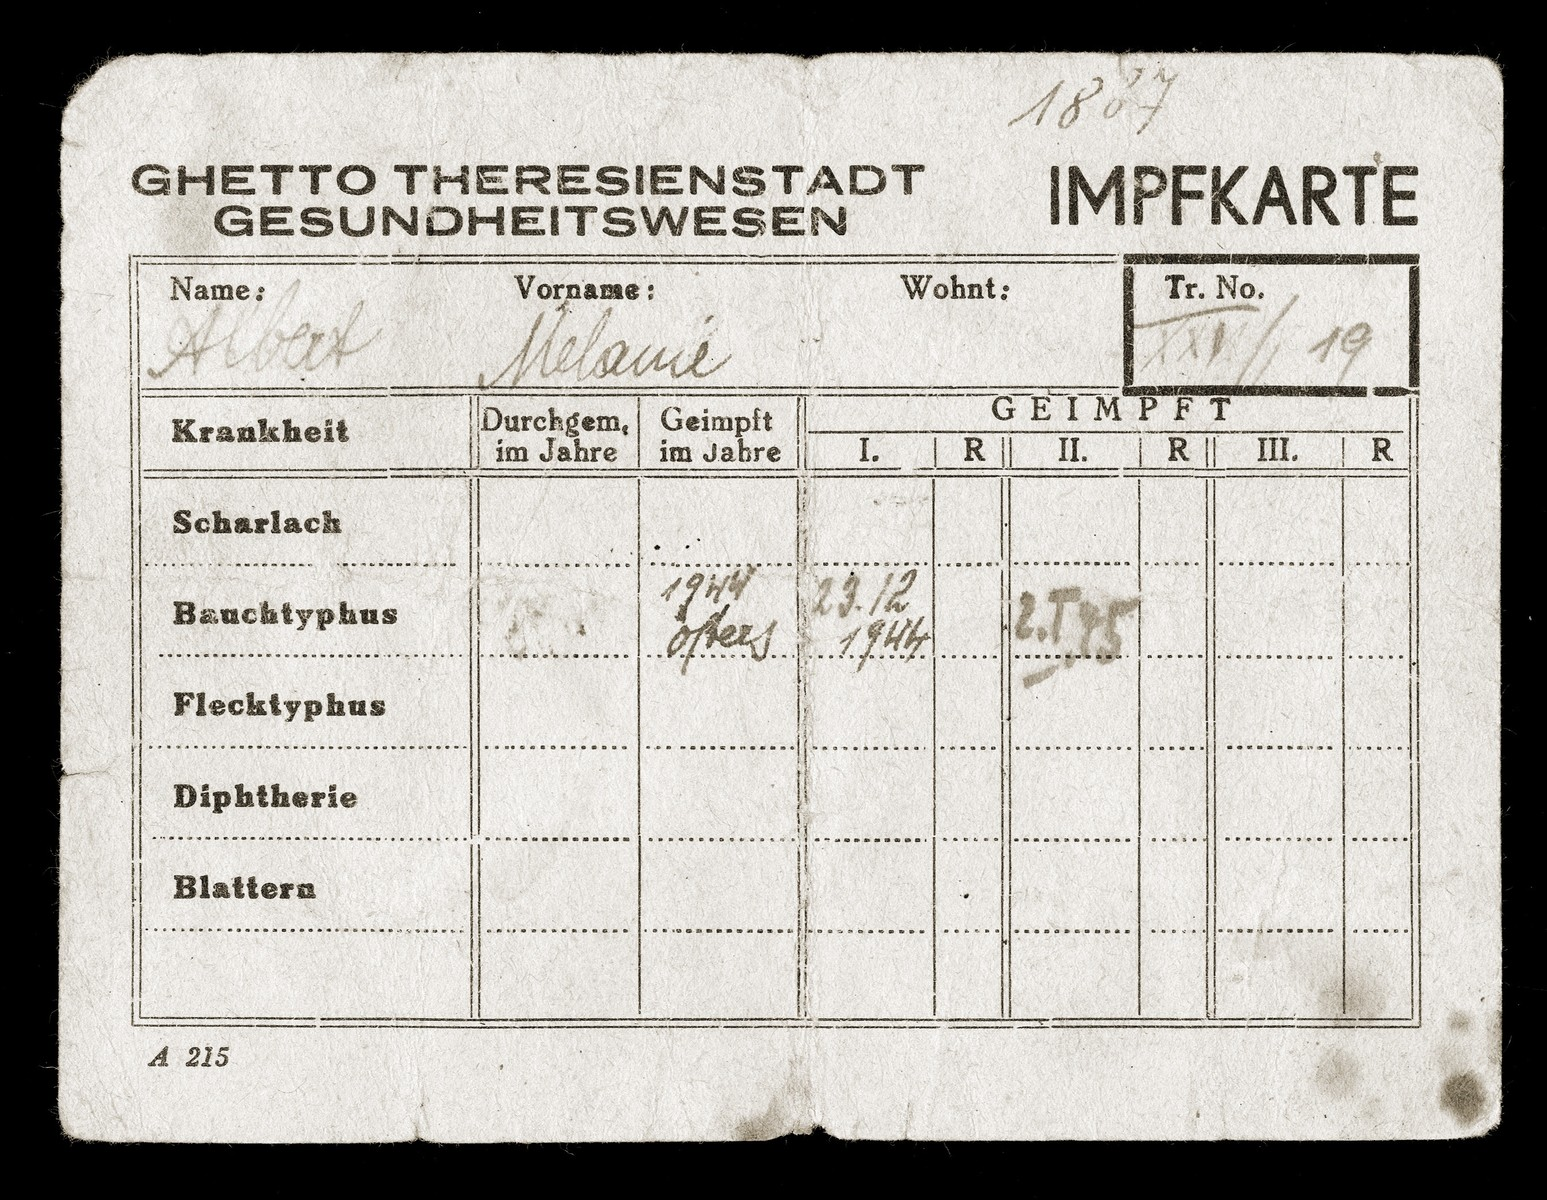 Vaccination card for inmate Melanie Elbert [misspelled Albert] issued by the Ghetto Theresienstadt health office.